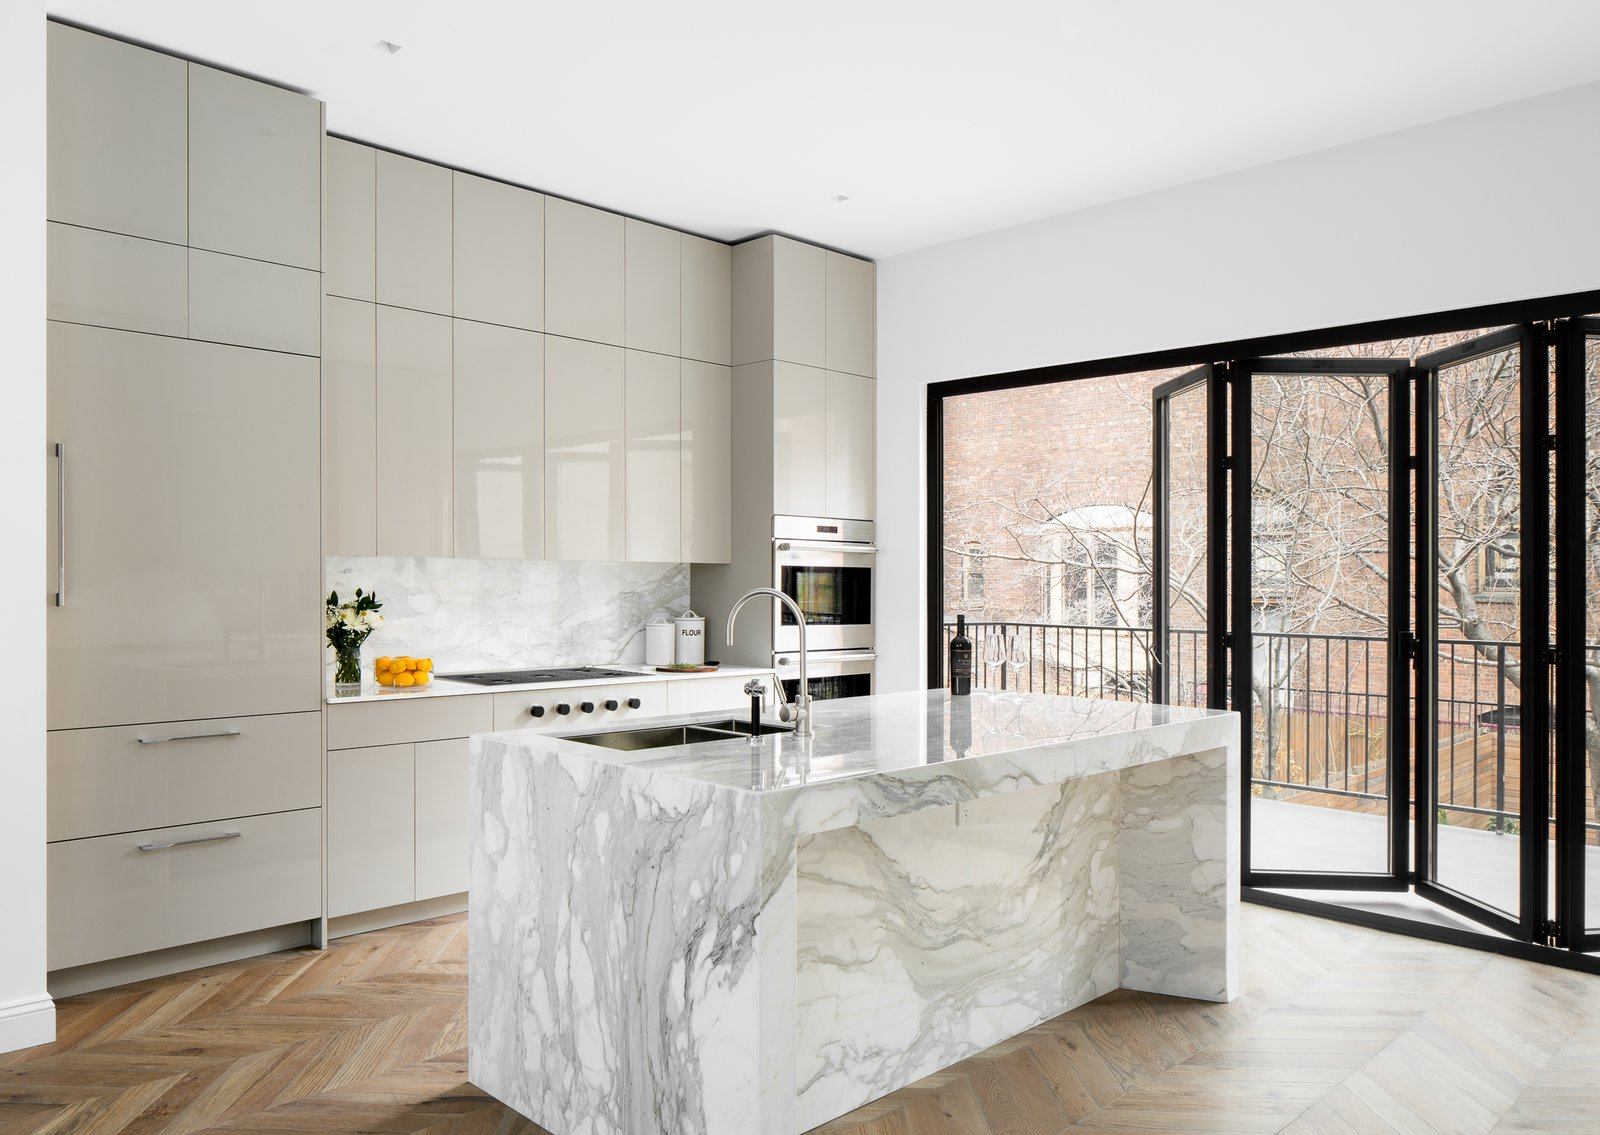 Kitchen, Refrigerator, Stone Slab Backsplashe, Cooktops, Medium Hardwood Floor, Marble Counter, Recessed Lighting, Colorful Cabinet, and Wall Oven  Boerum Hill Brownstone